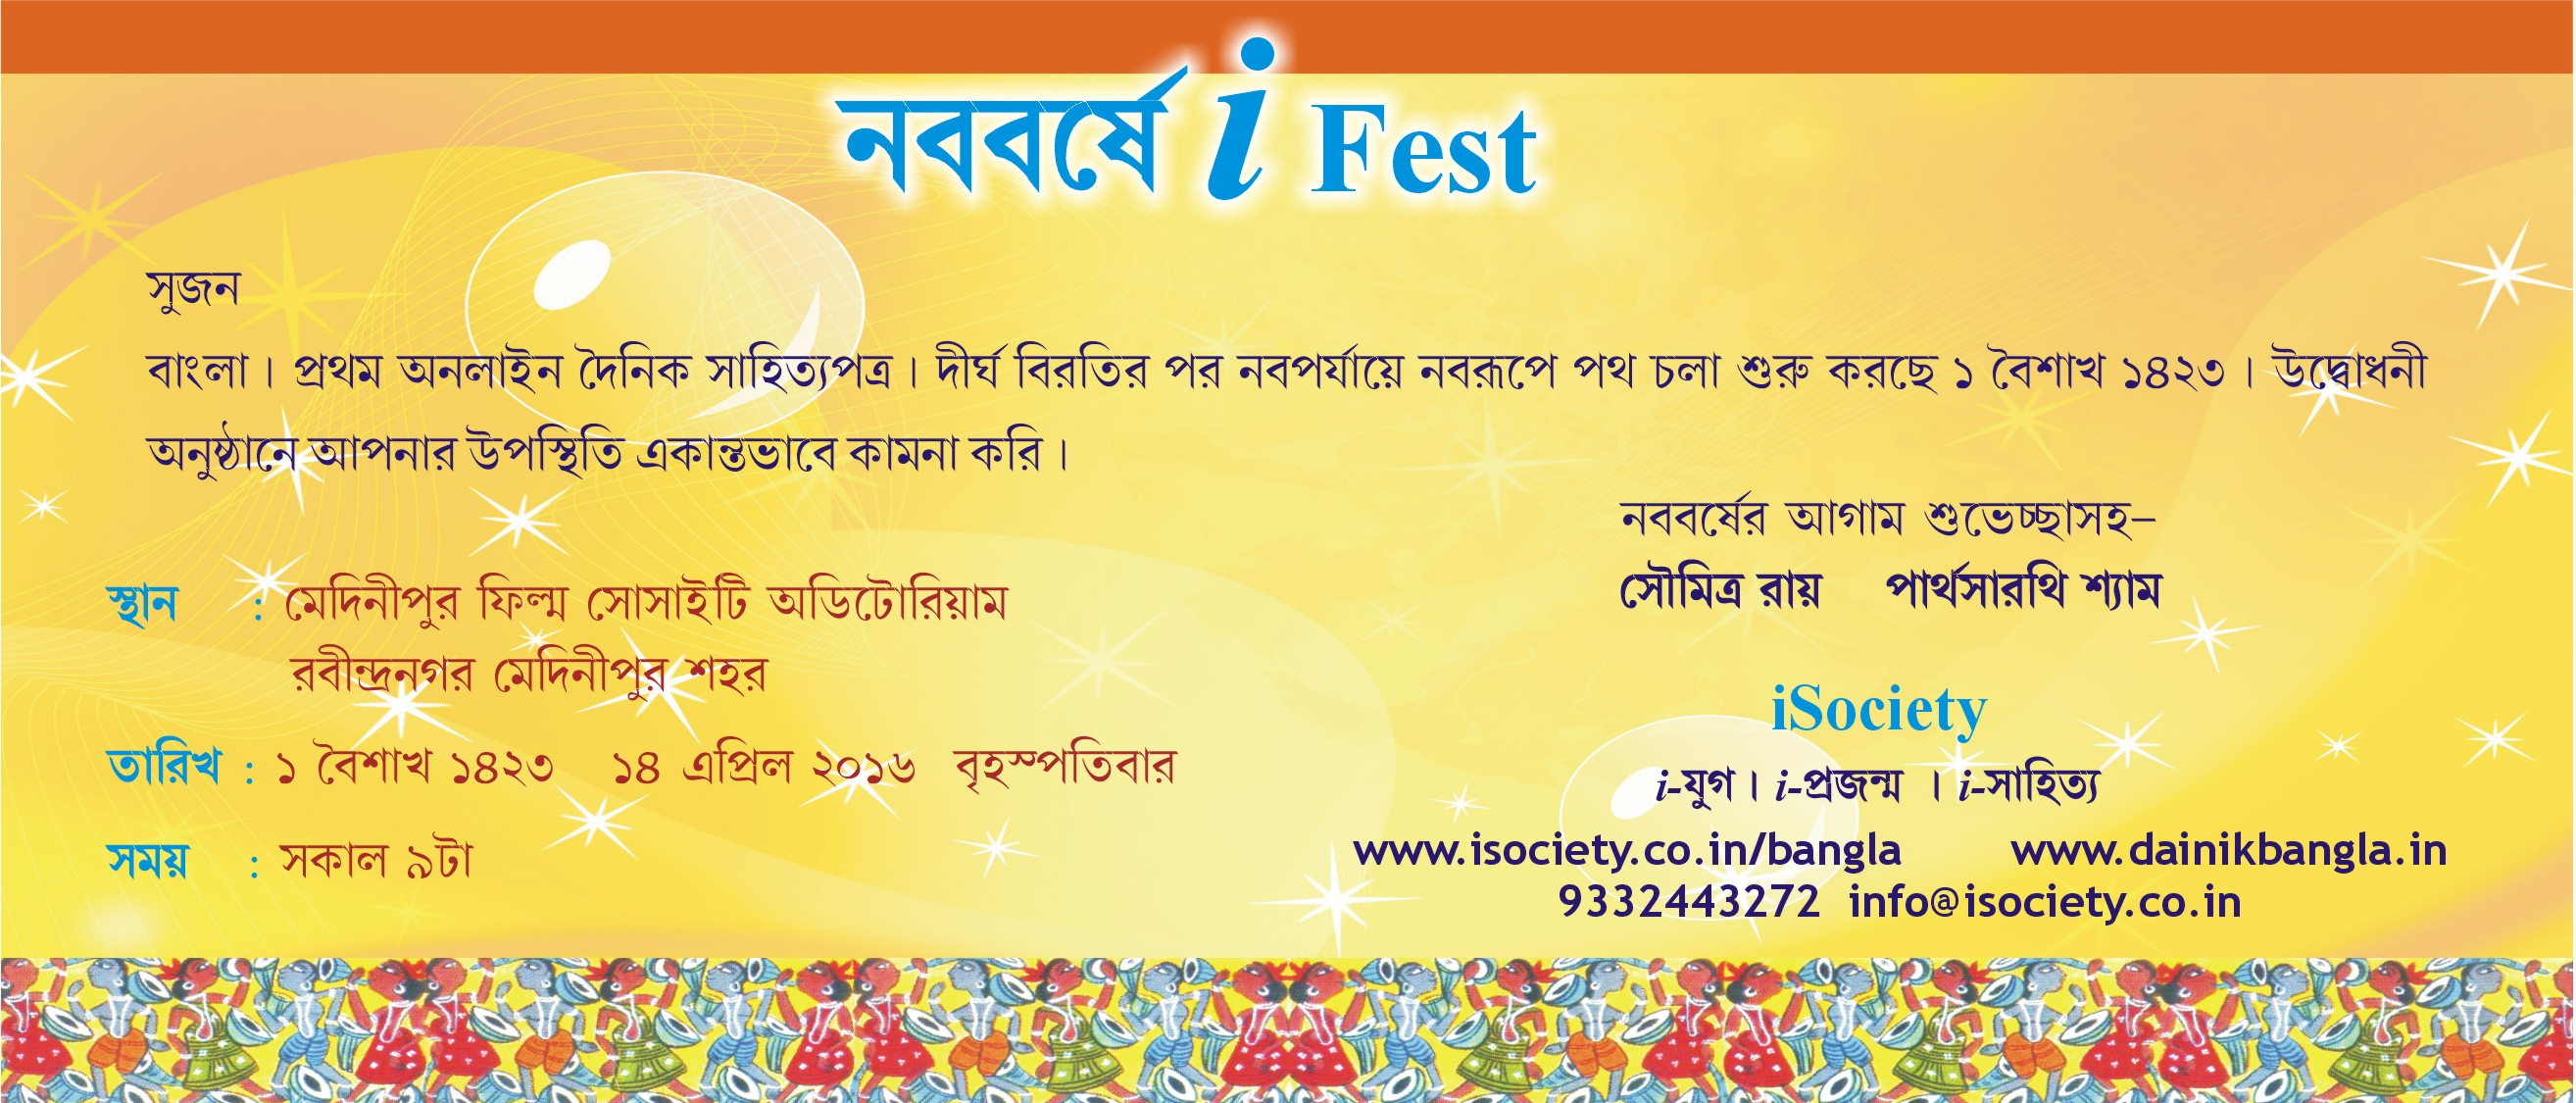 www.isociety.co.in/bangla www.dainikbangla.in